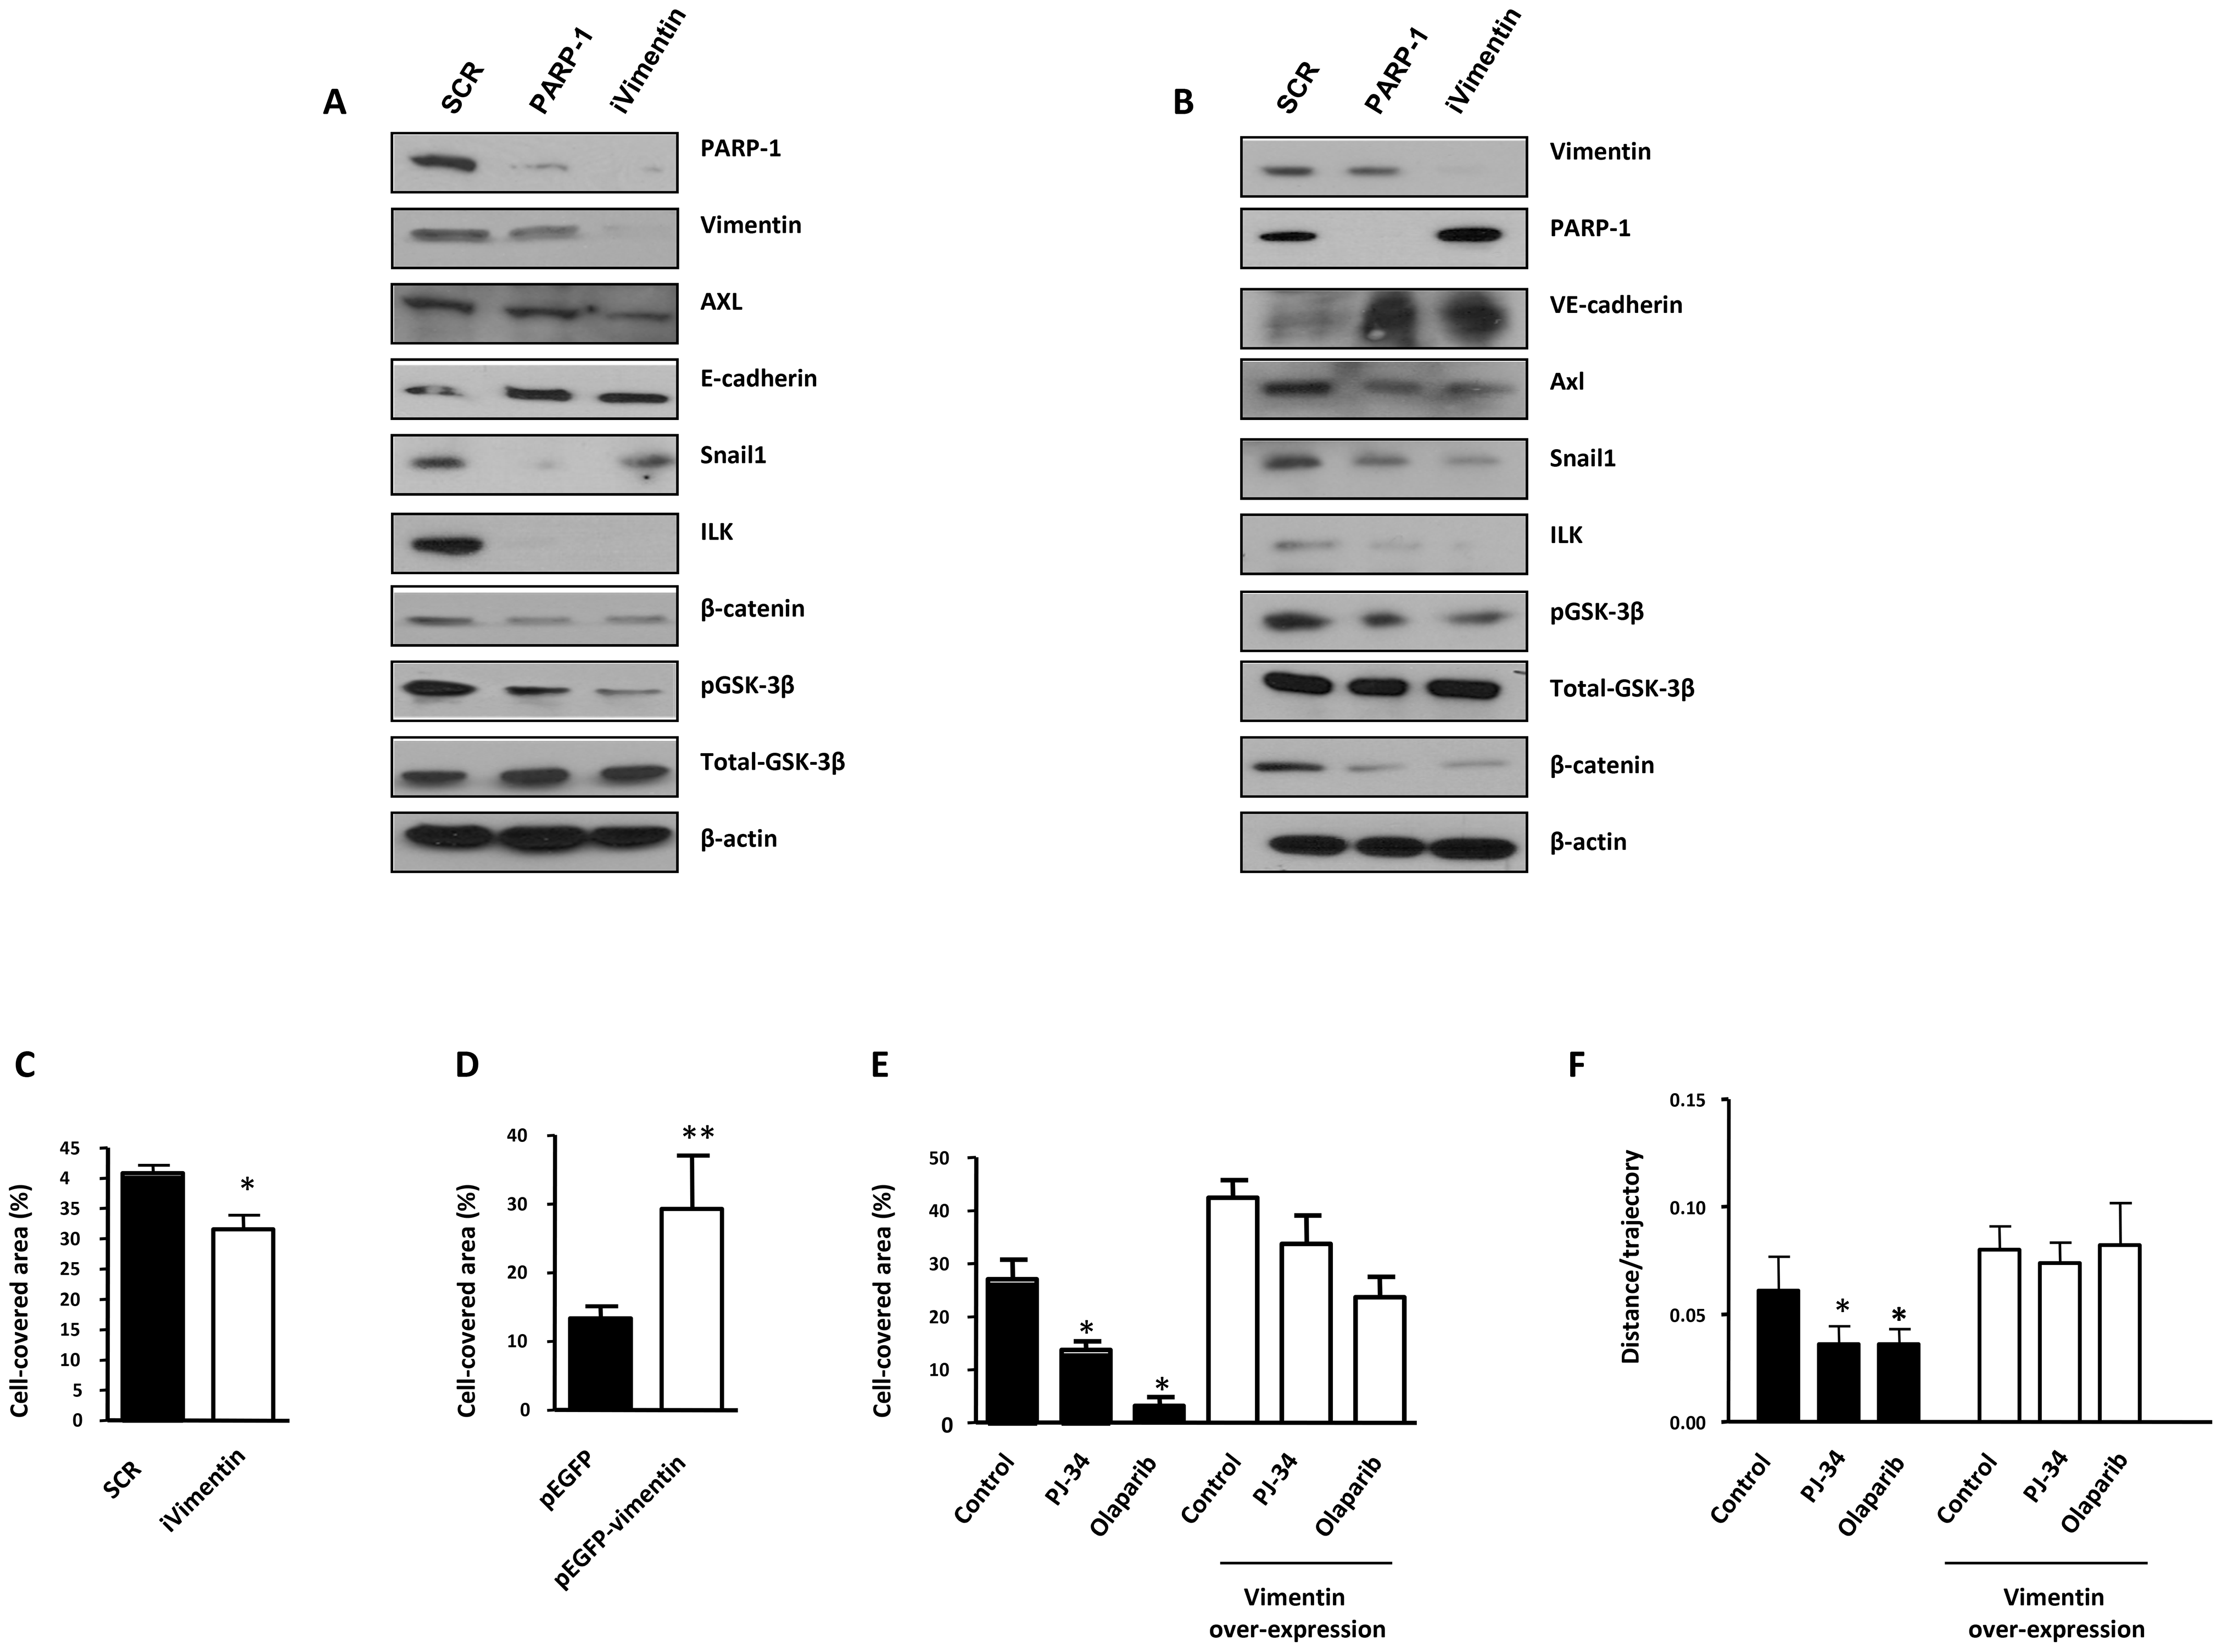 PARP-1 or vimentin is sufficient to reverse EMT and confer increased cell motility.